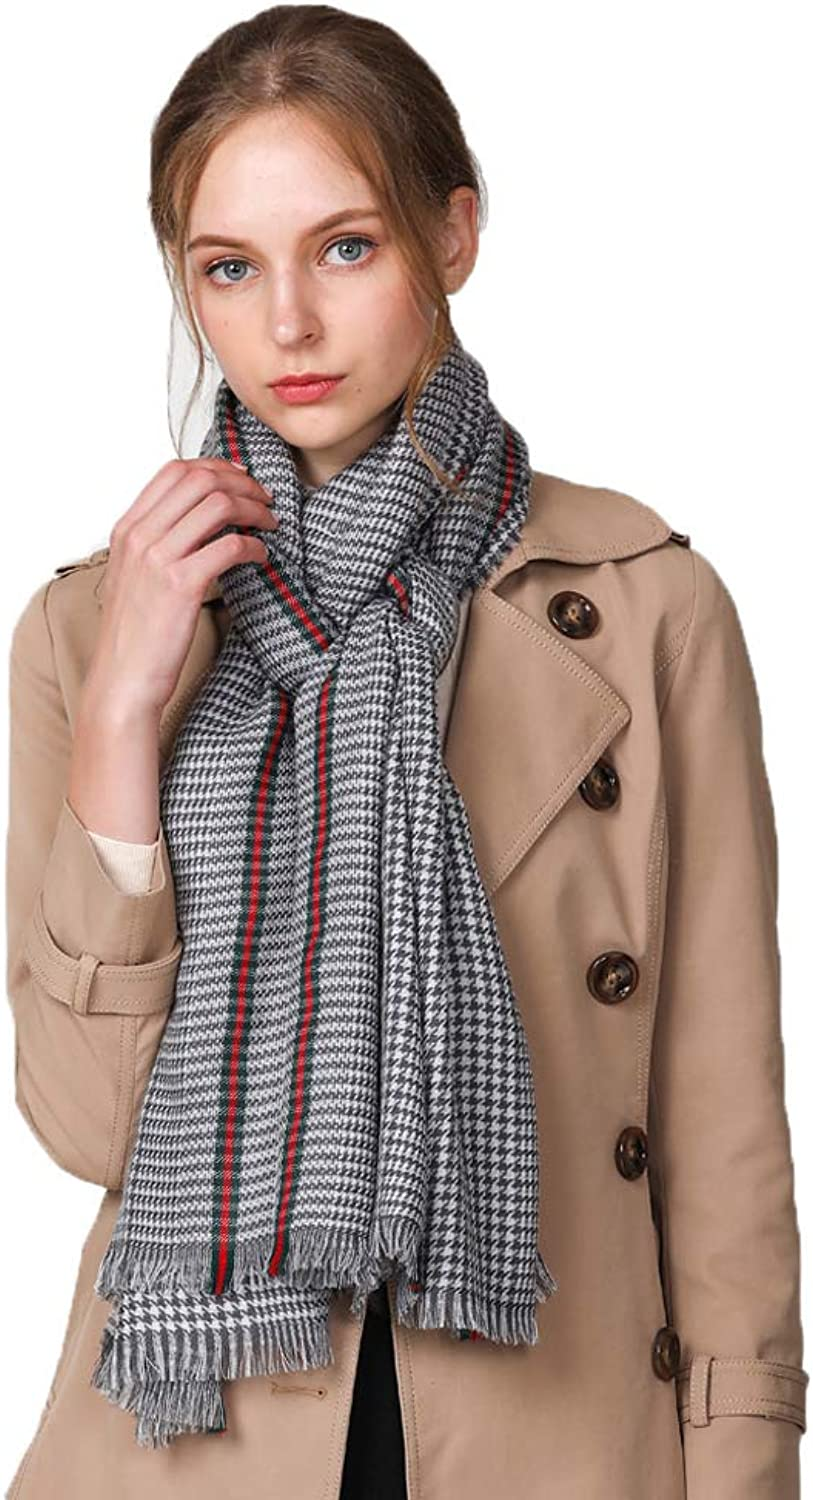 Hong Tai Yang Women's Scarf Plaid Wool Scarf 80 Aussie Hair Autumn and Winter Air Conditioning Room Warm Thick Shawl Dualuse Ladies Bib The Most Beautiful Gift (color   C)